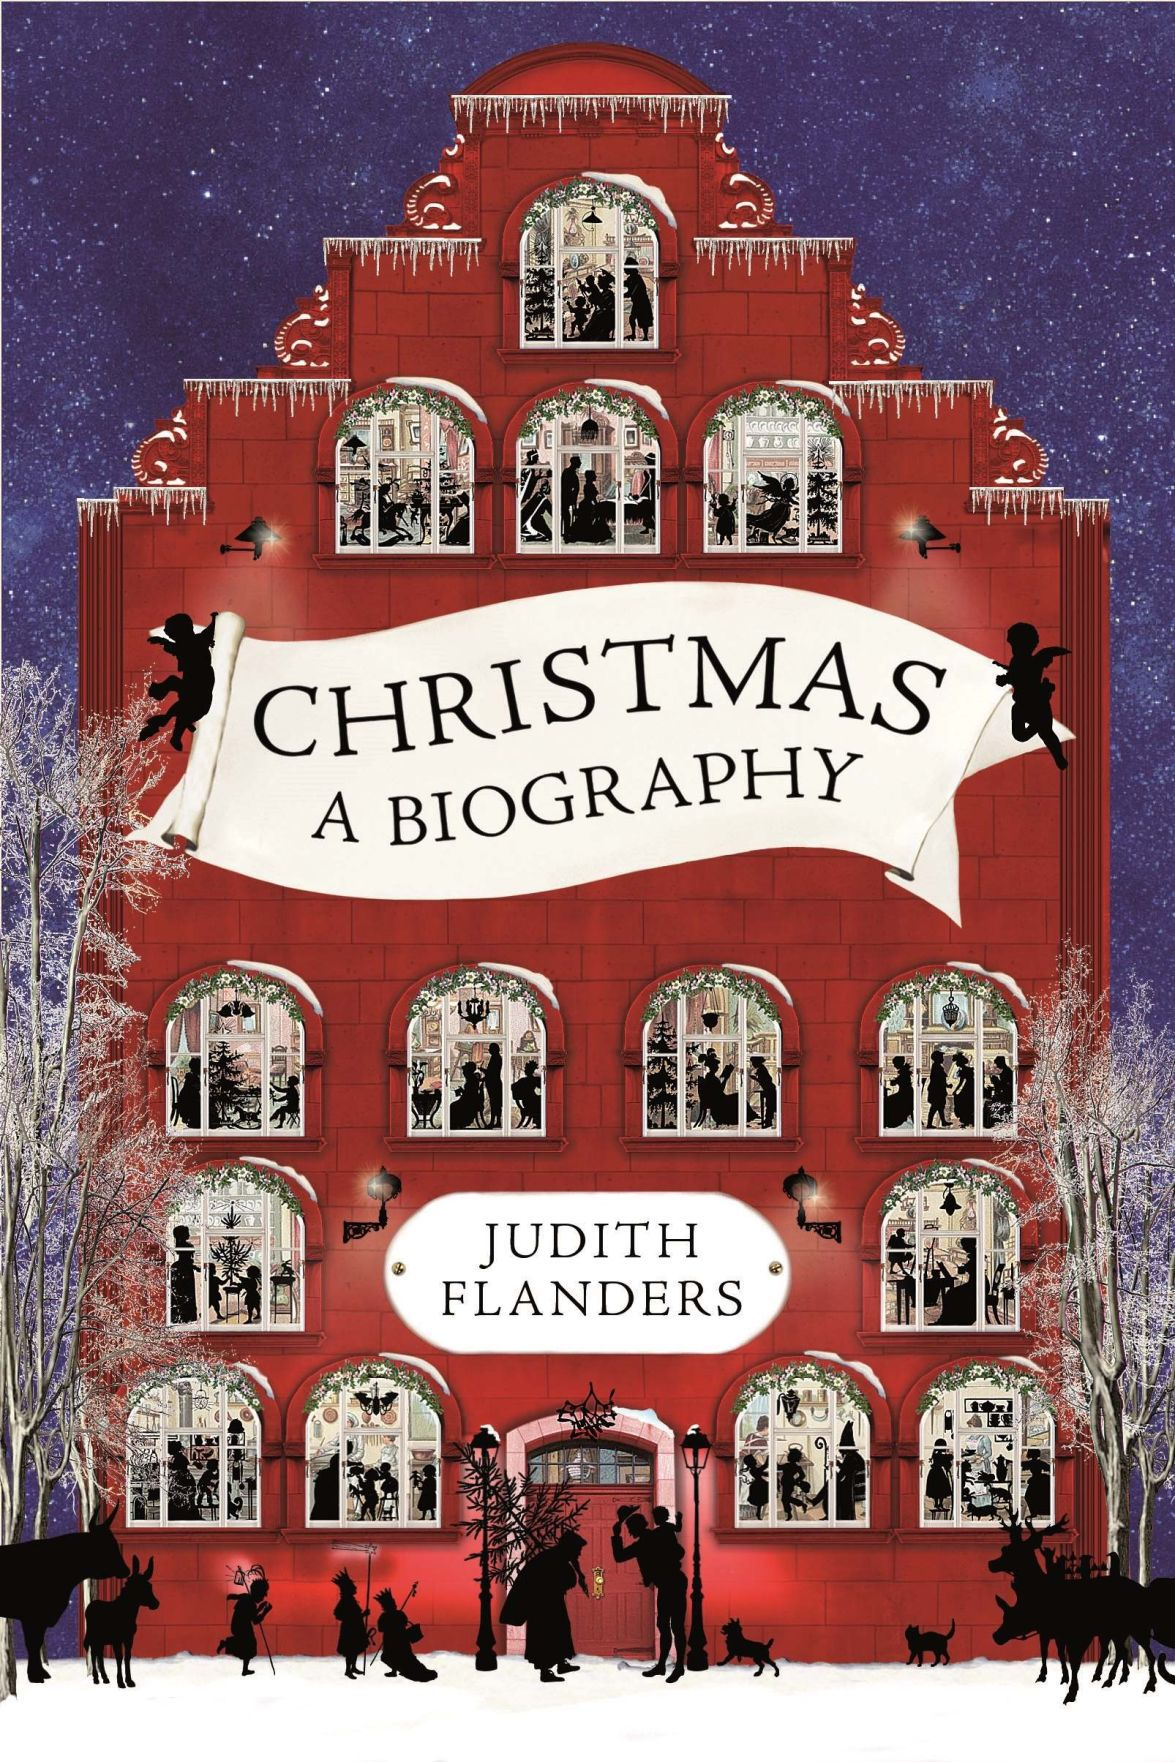 'Christmas: A Biography' by Judith Flanders